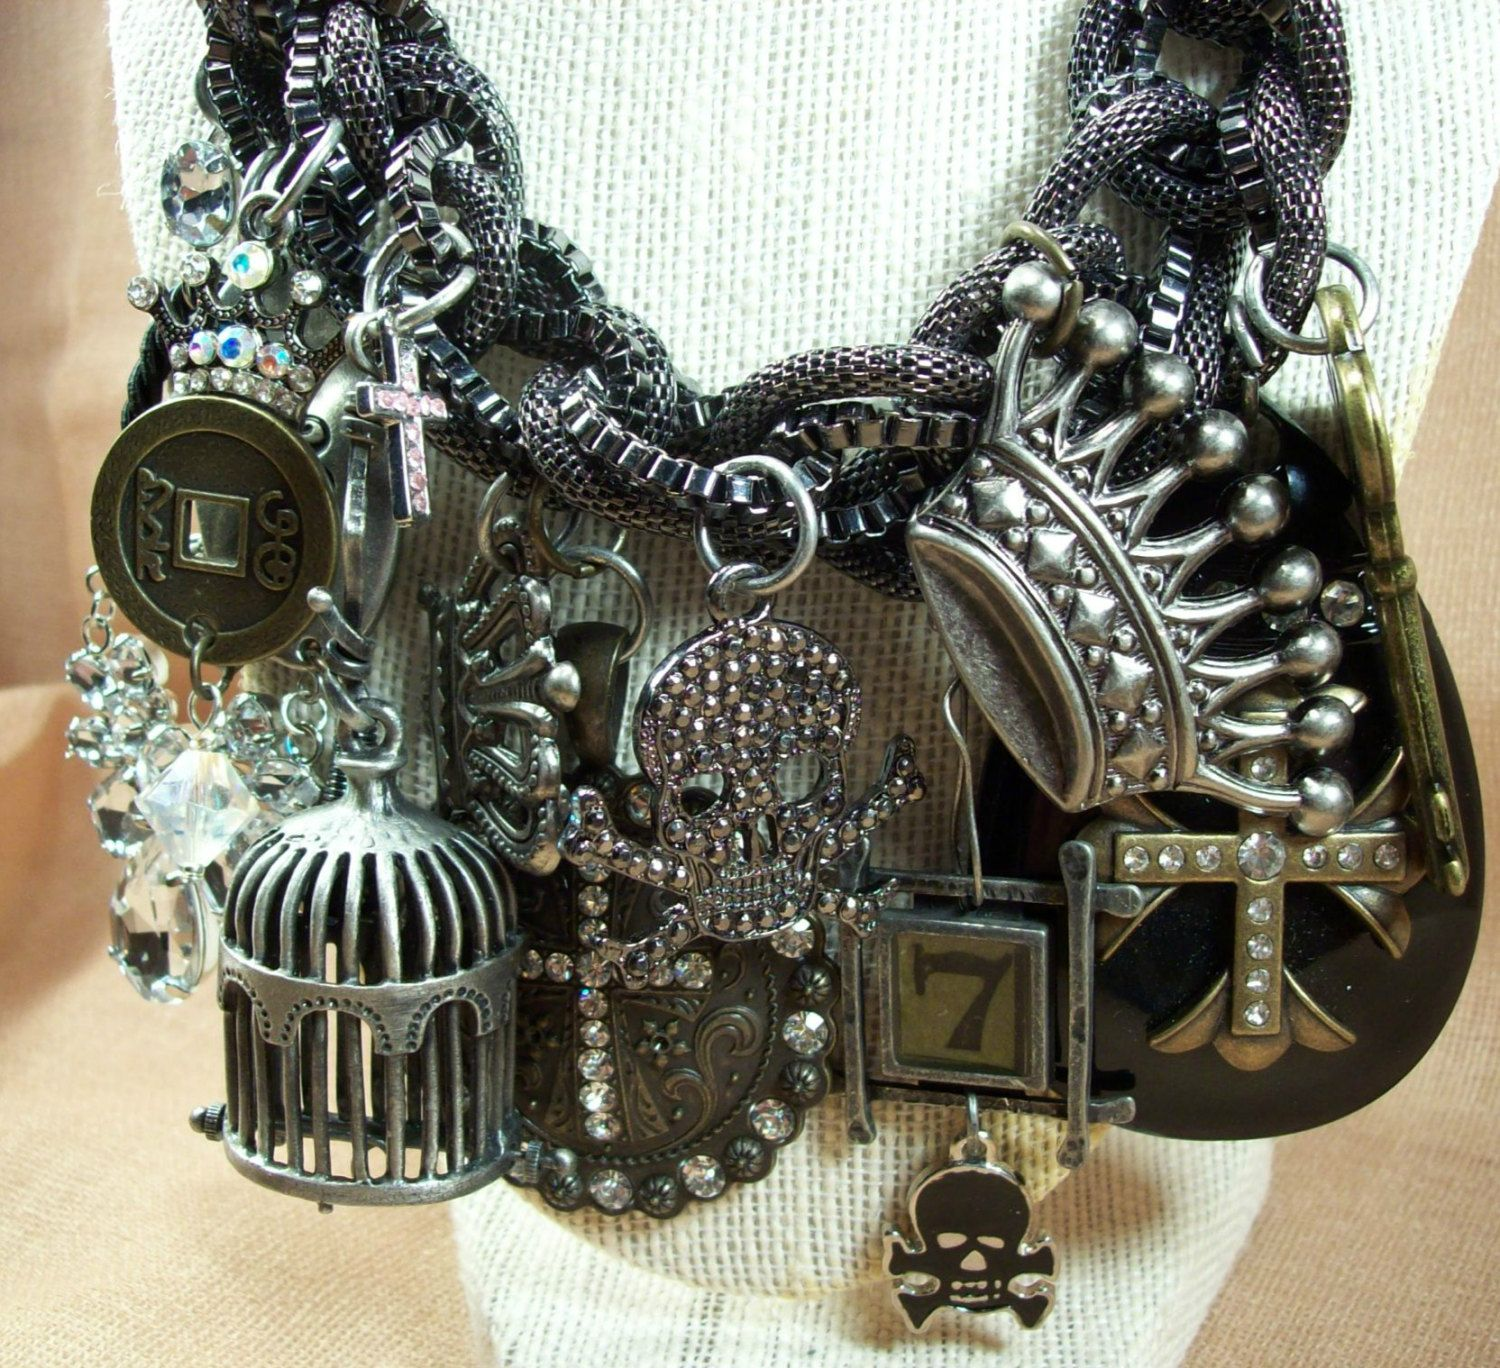 Ebony Noir Dark And Unusual Trash Glam Skull Iconic Fierce Brutalist Mystical Pirate Swag Ohio Made Louzart Mixed Media Gothic Original OOAK